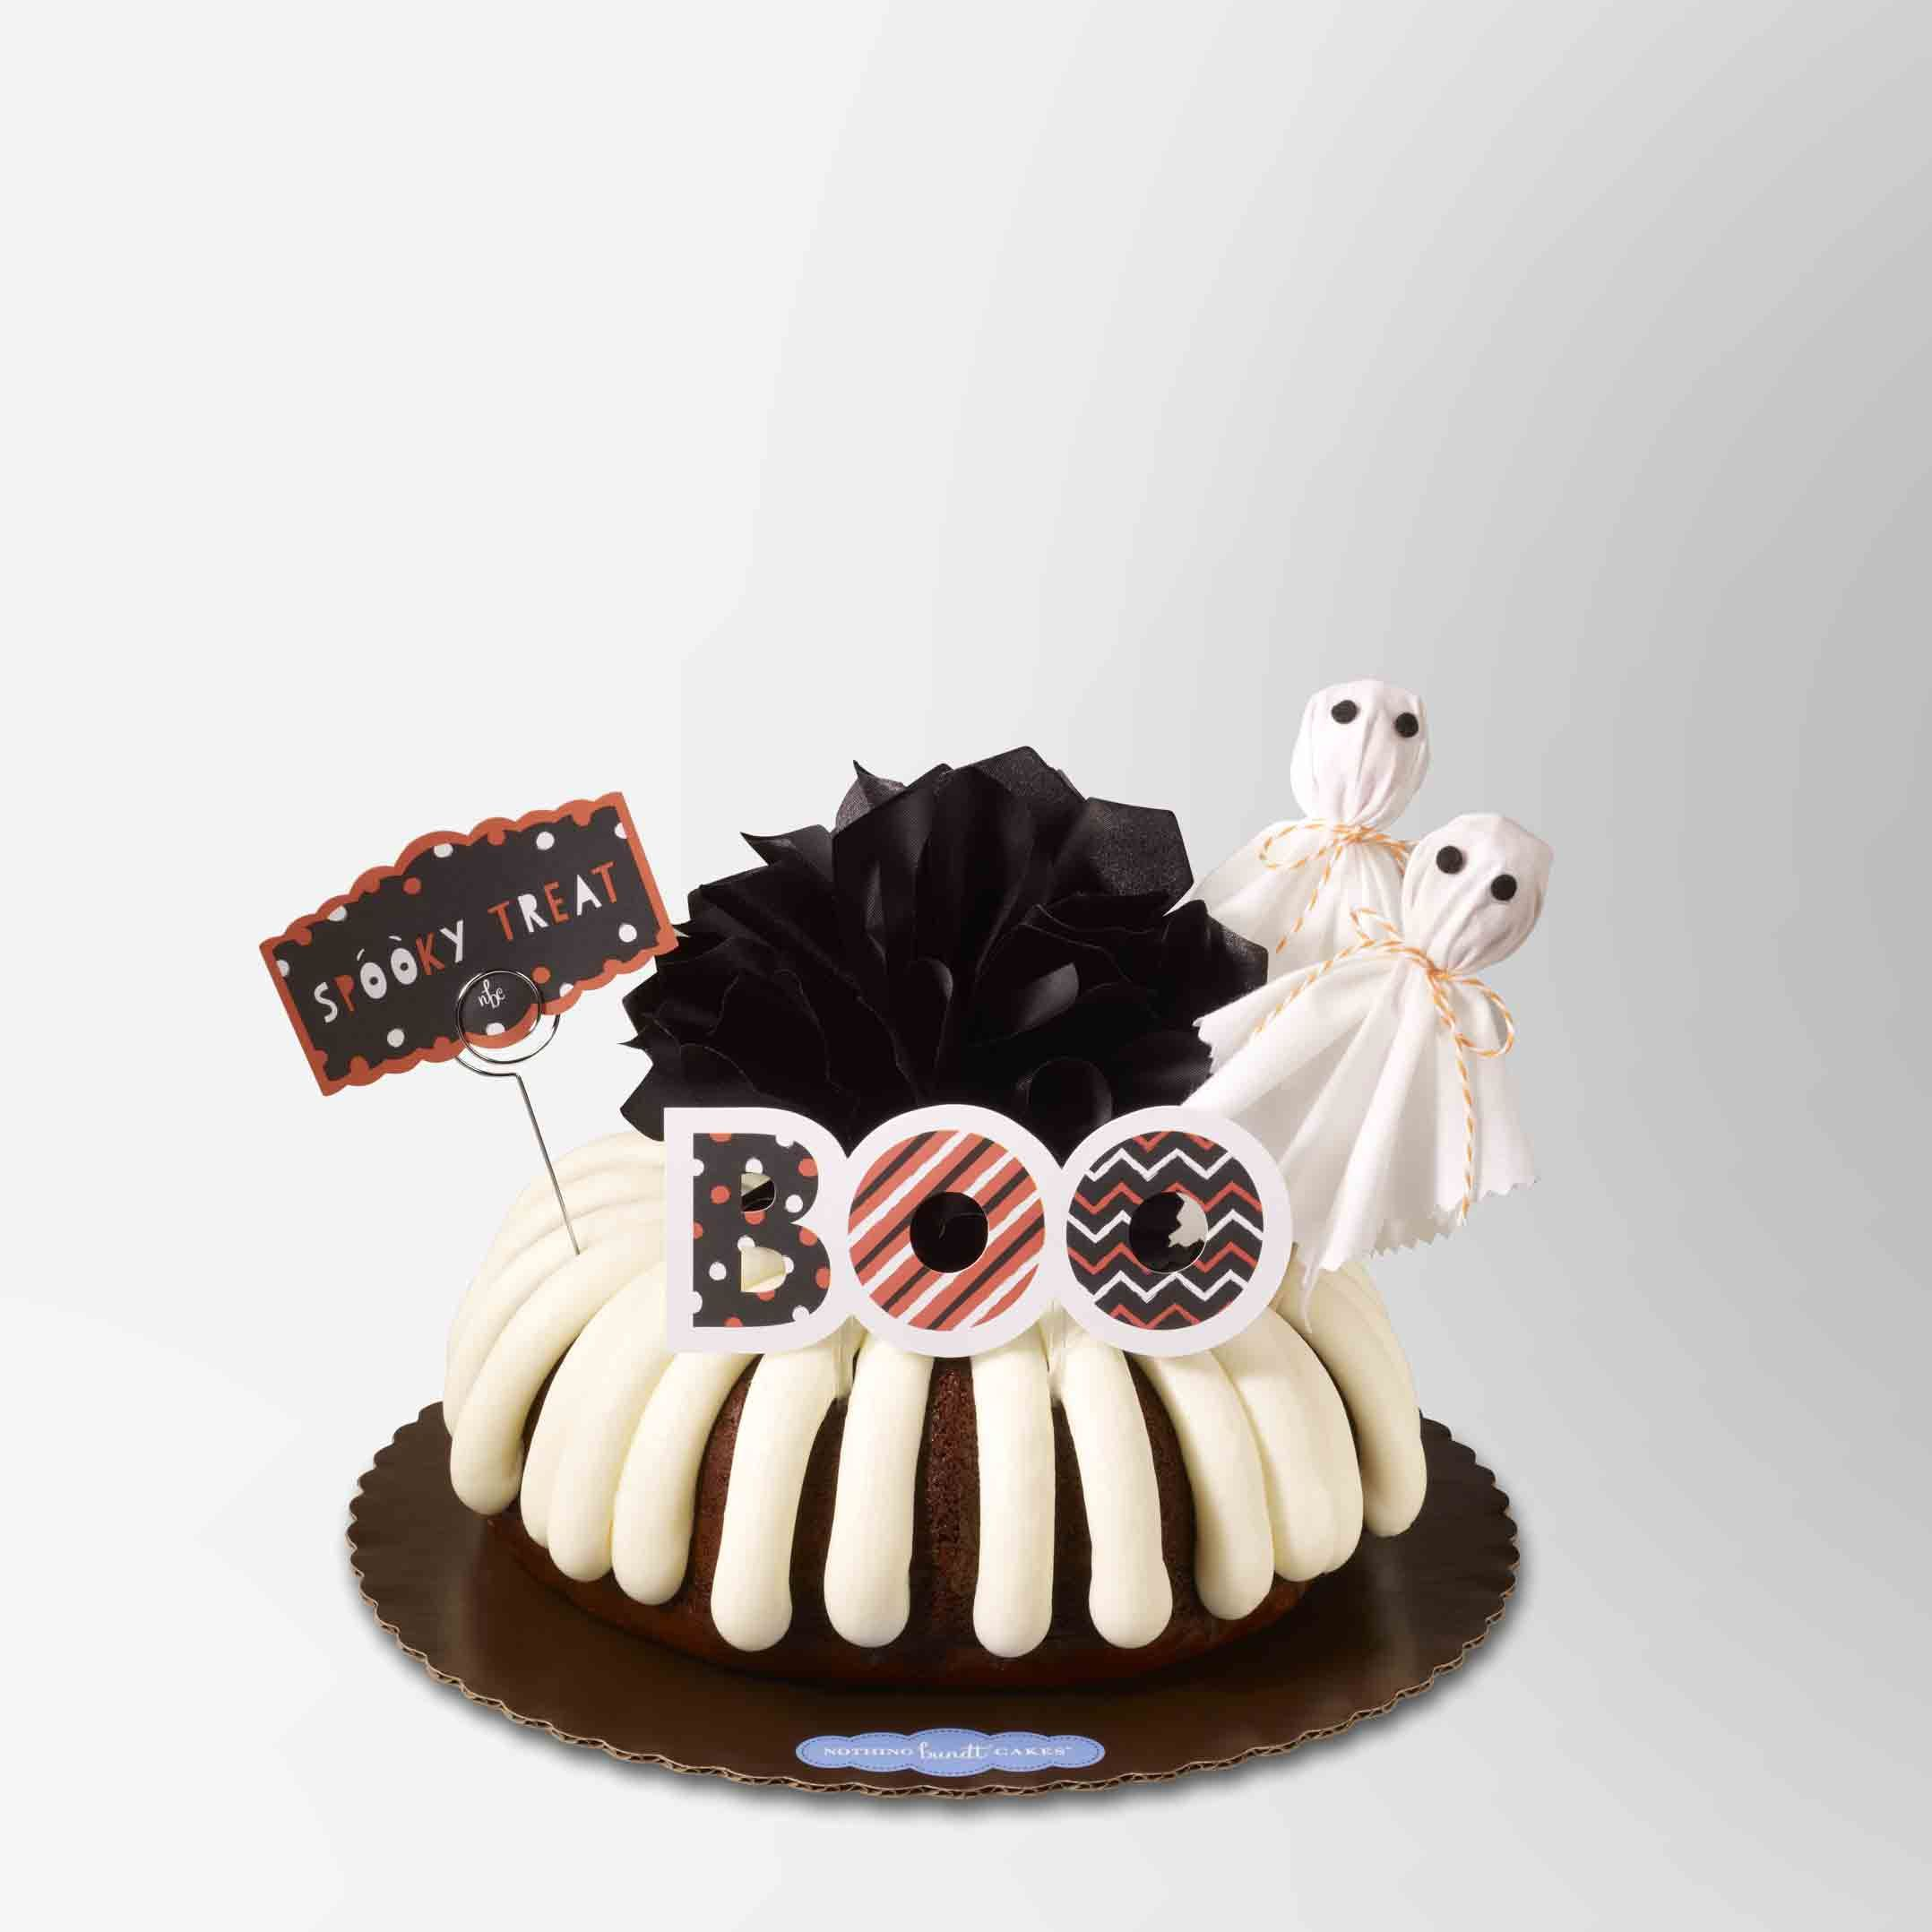 cakes for any occasion from a local bakery | nothing bundt cakes